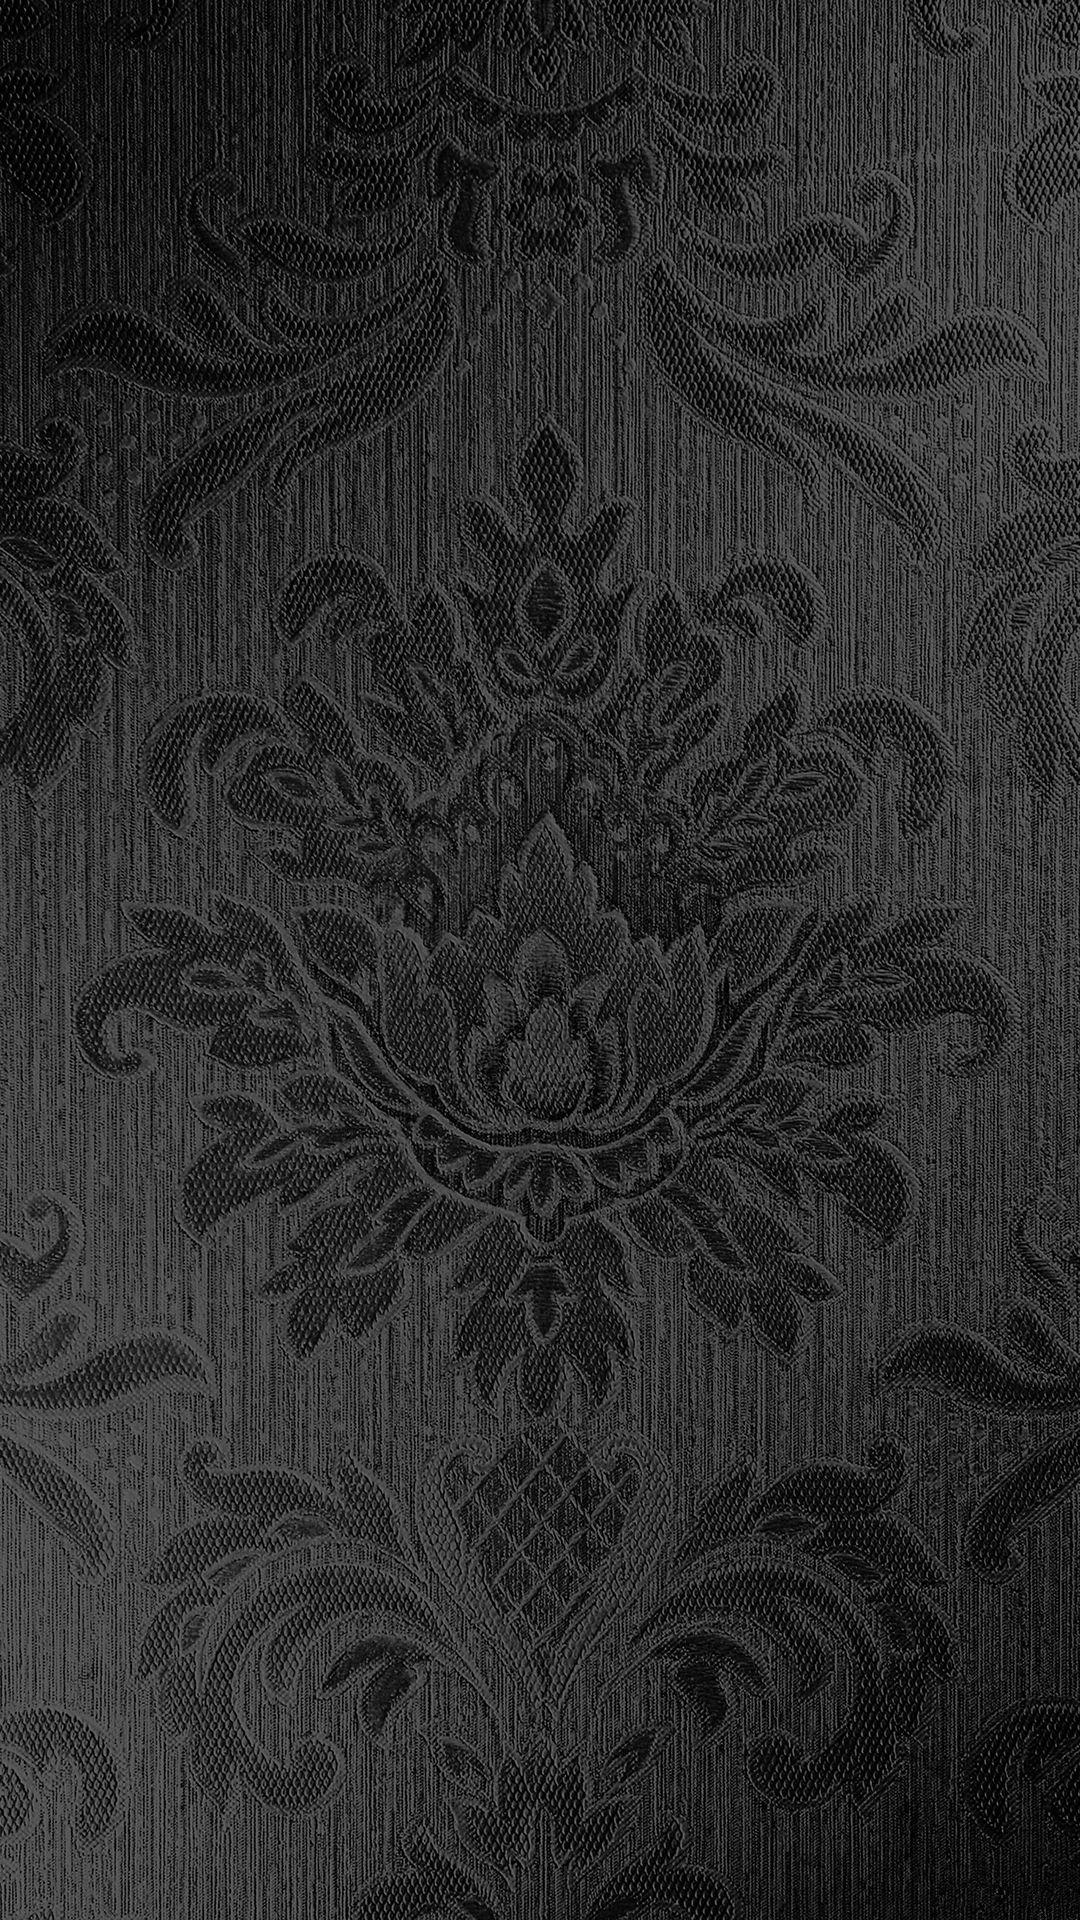 Vintage Art Dark Texture Pattern iPhone 6 wallpaper ...